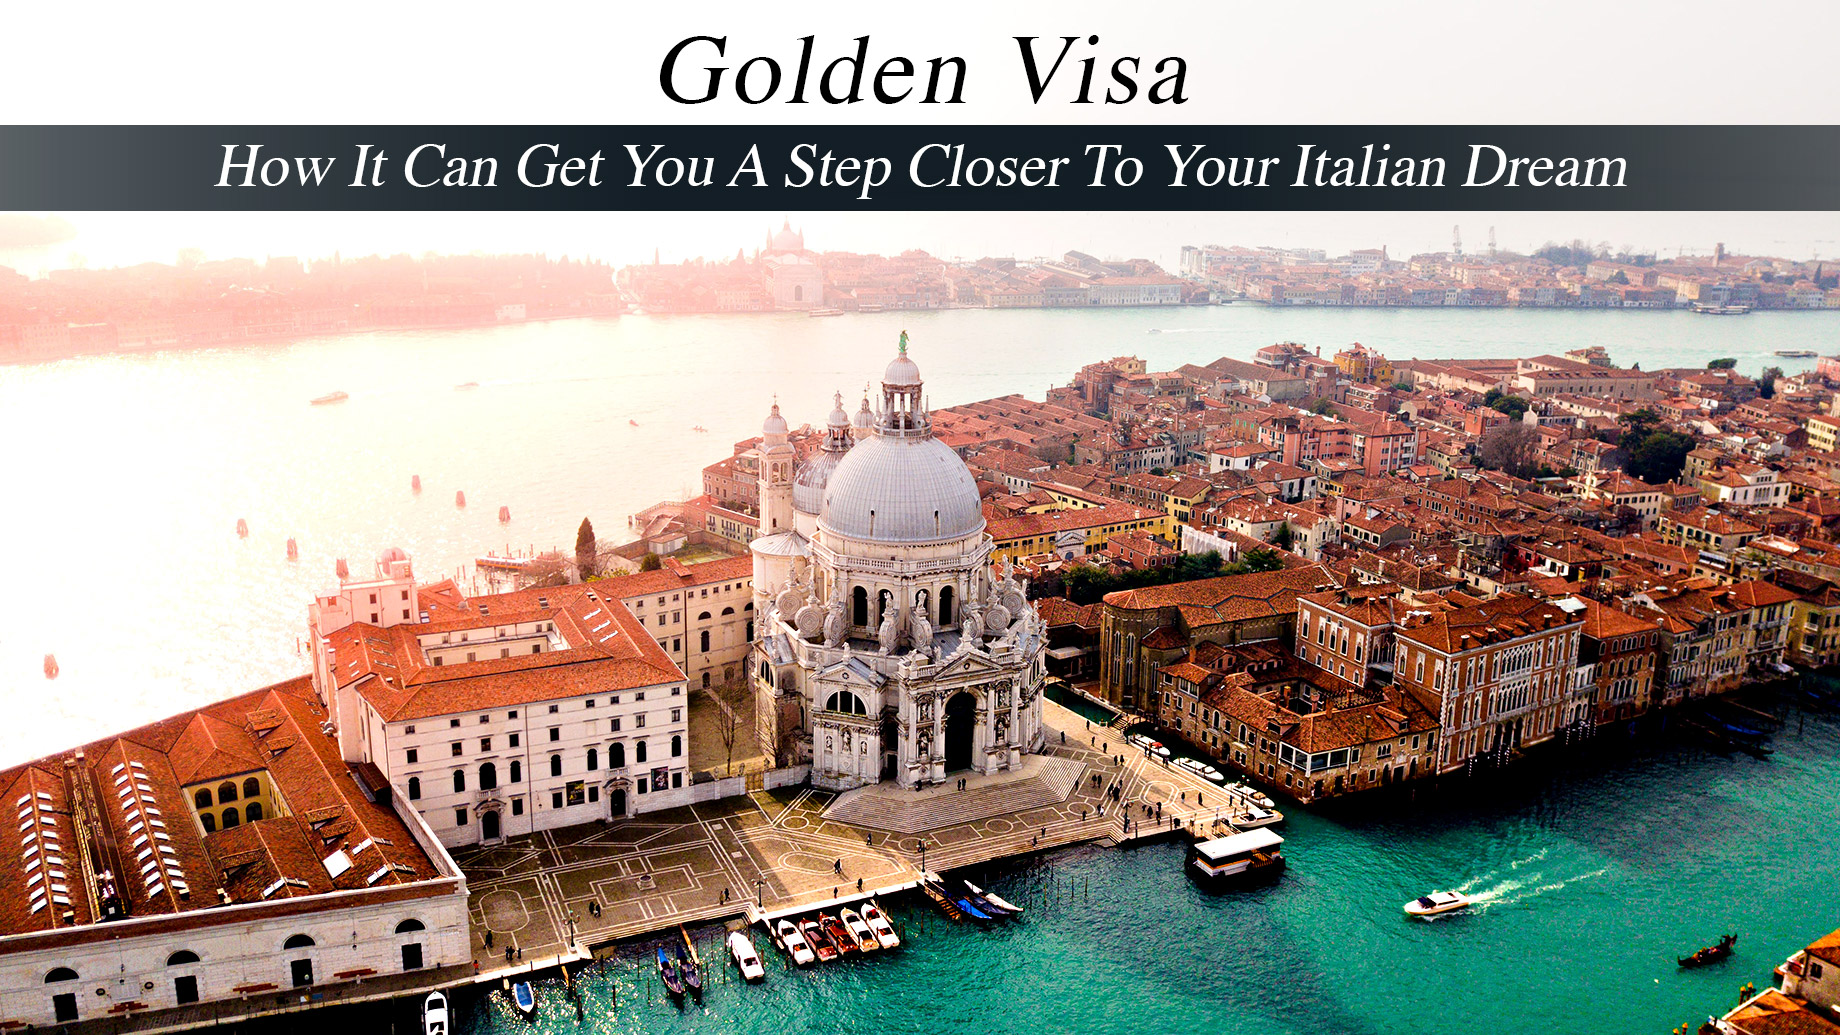 Golden Visa - How It Can Get You A Step Closer To Your Italian Dream